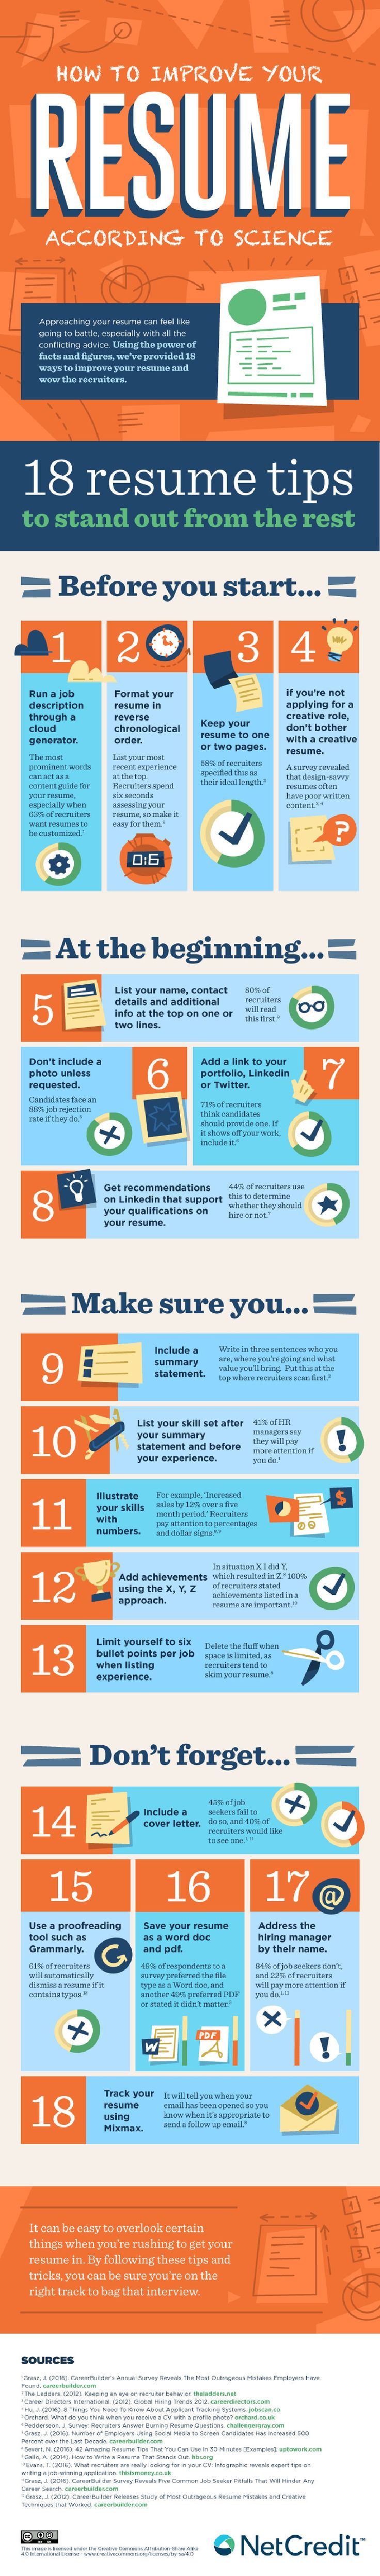 18 Ways To Improve Your Resume, Backed By Science [Infographic] | Lifehacker Australia